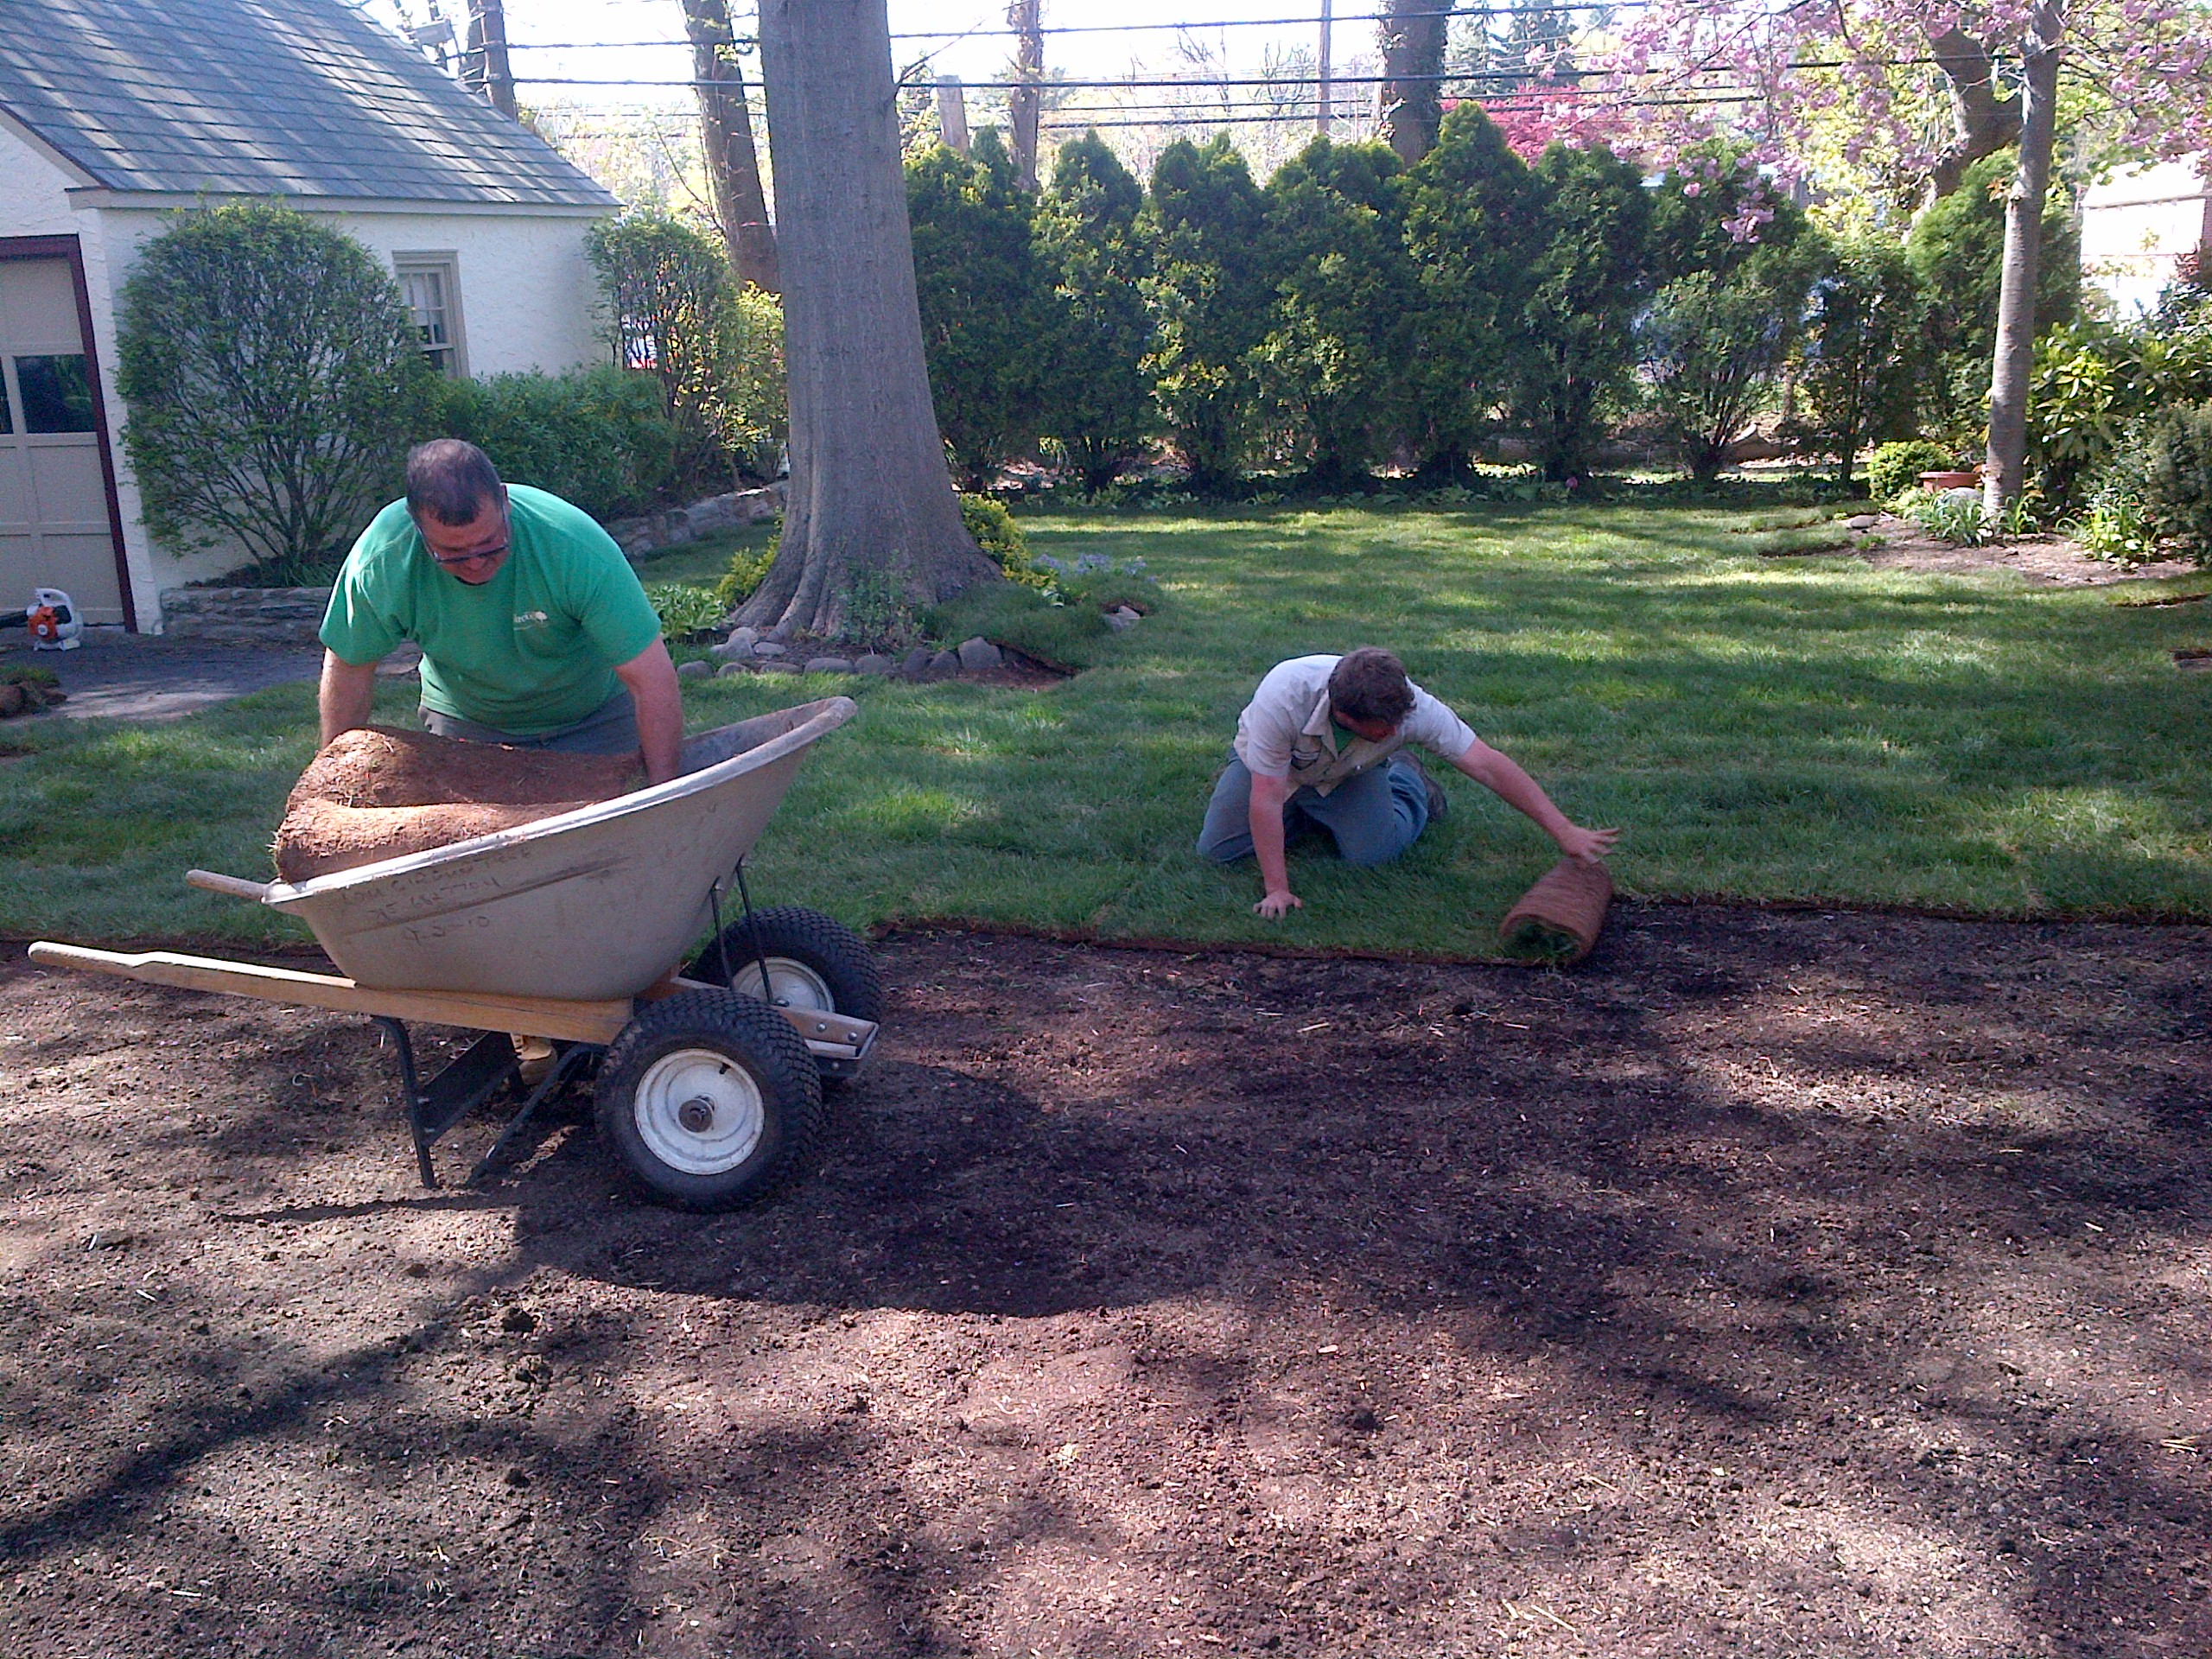 Laying down sod after complete lawn renovation to create a beautiful new lawn.